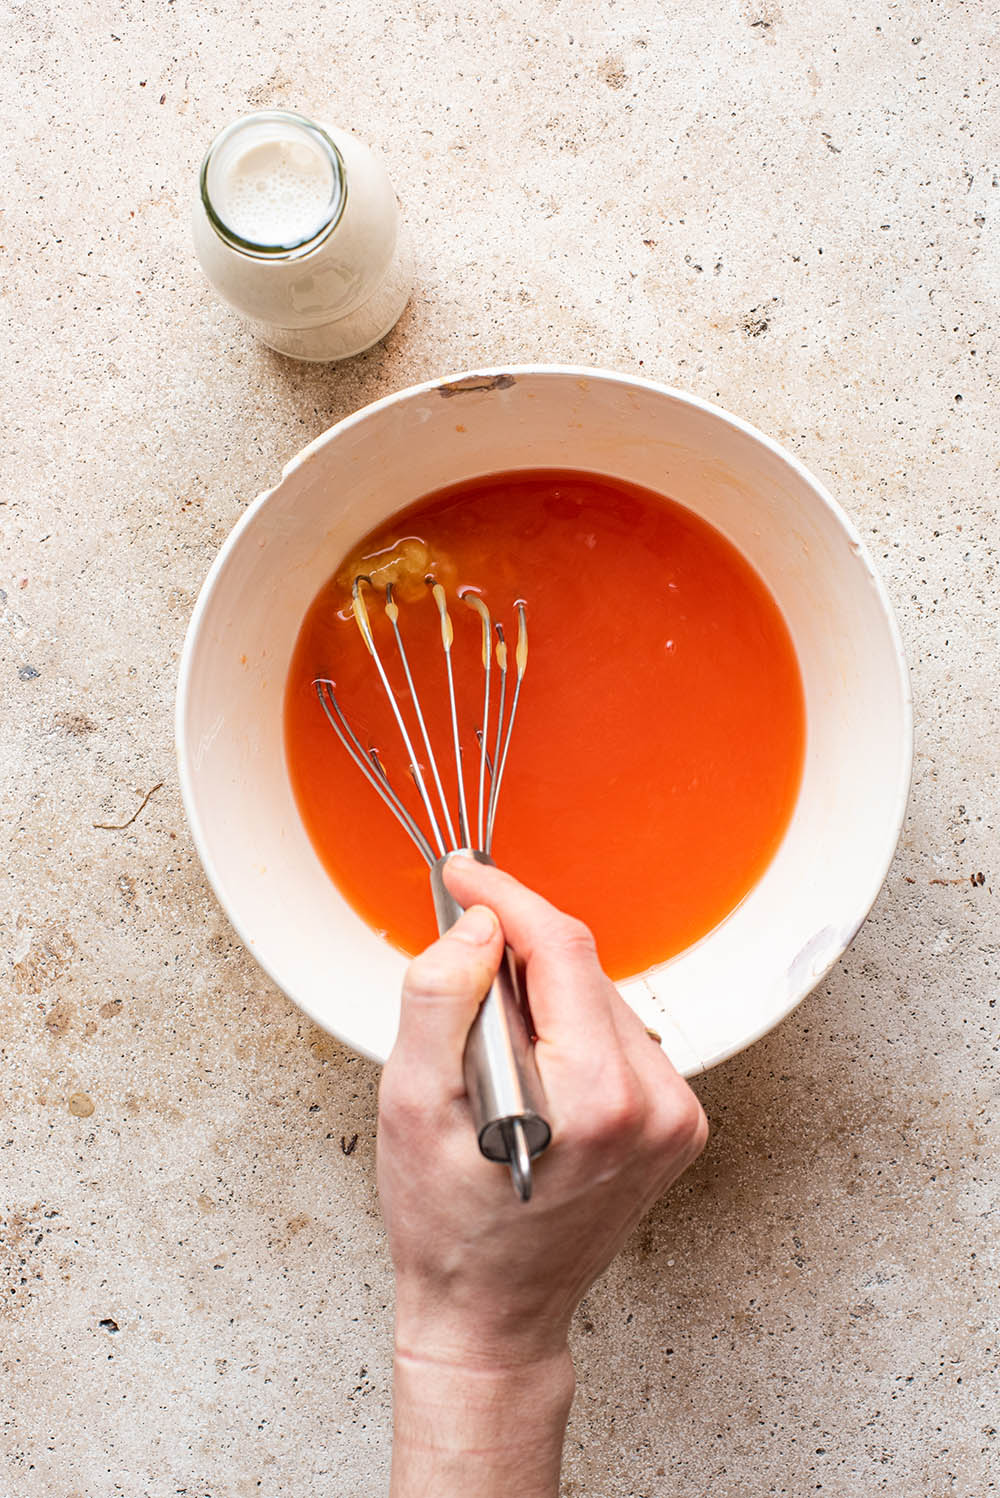 Honey being whisked in to the orange juice mixture.